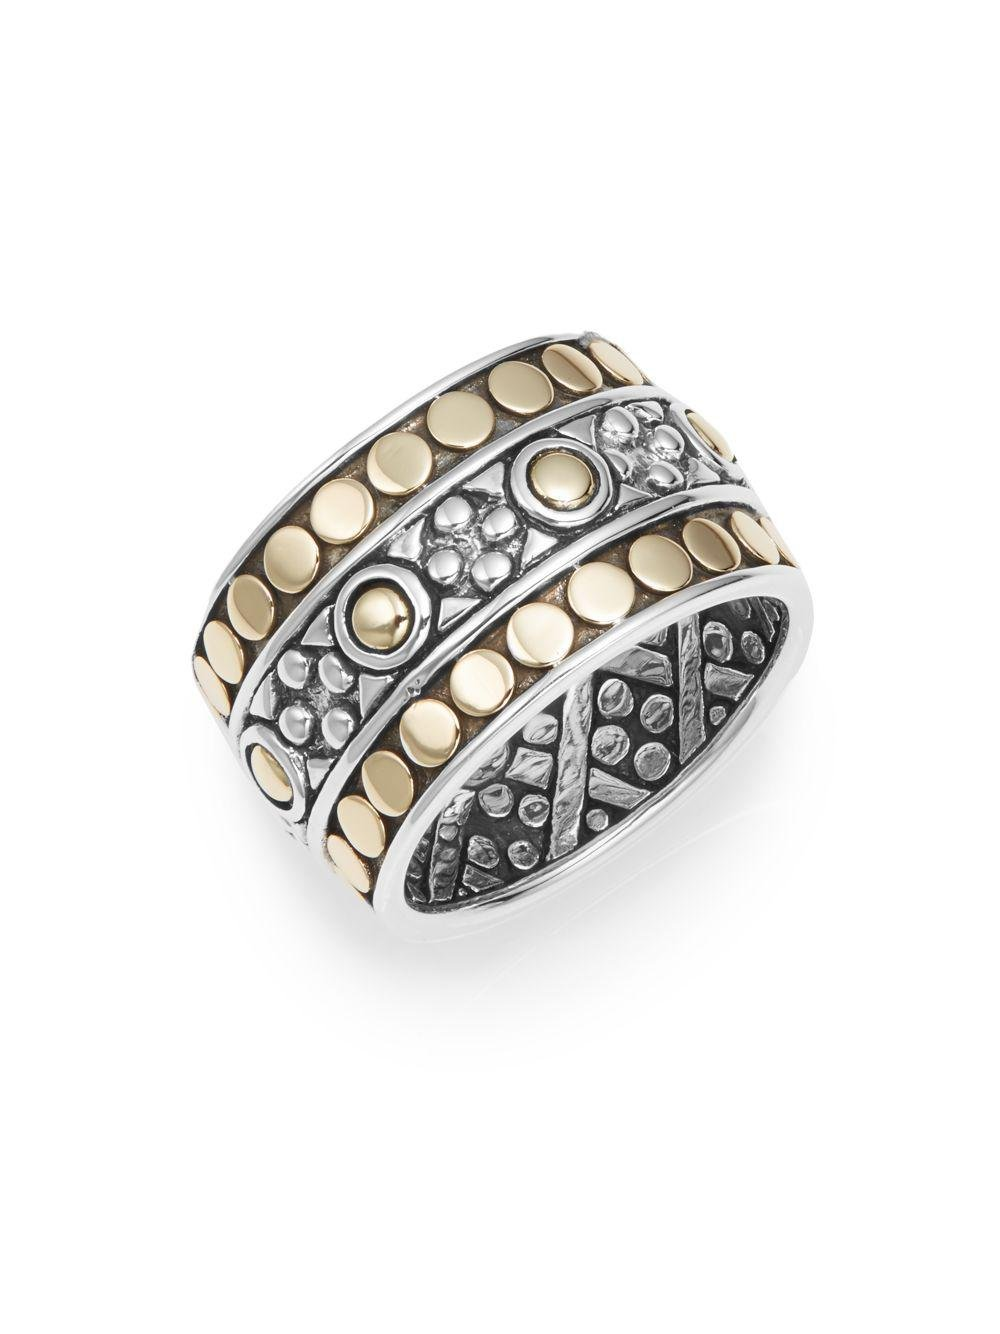 John Hardy Jaisalmer Dot Twisted Oval Ring, Size 7